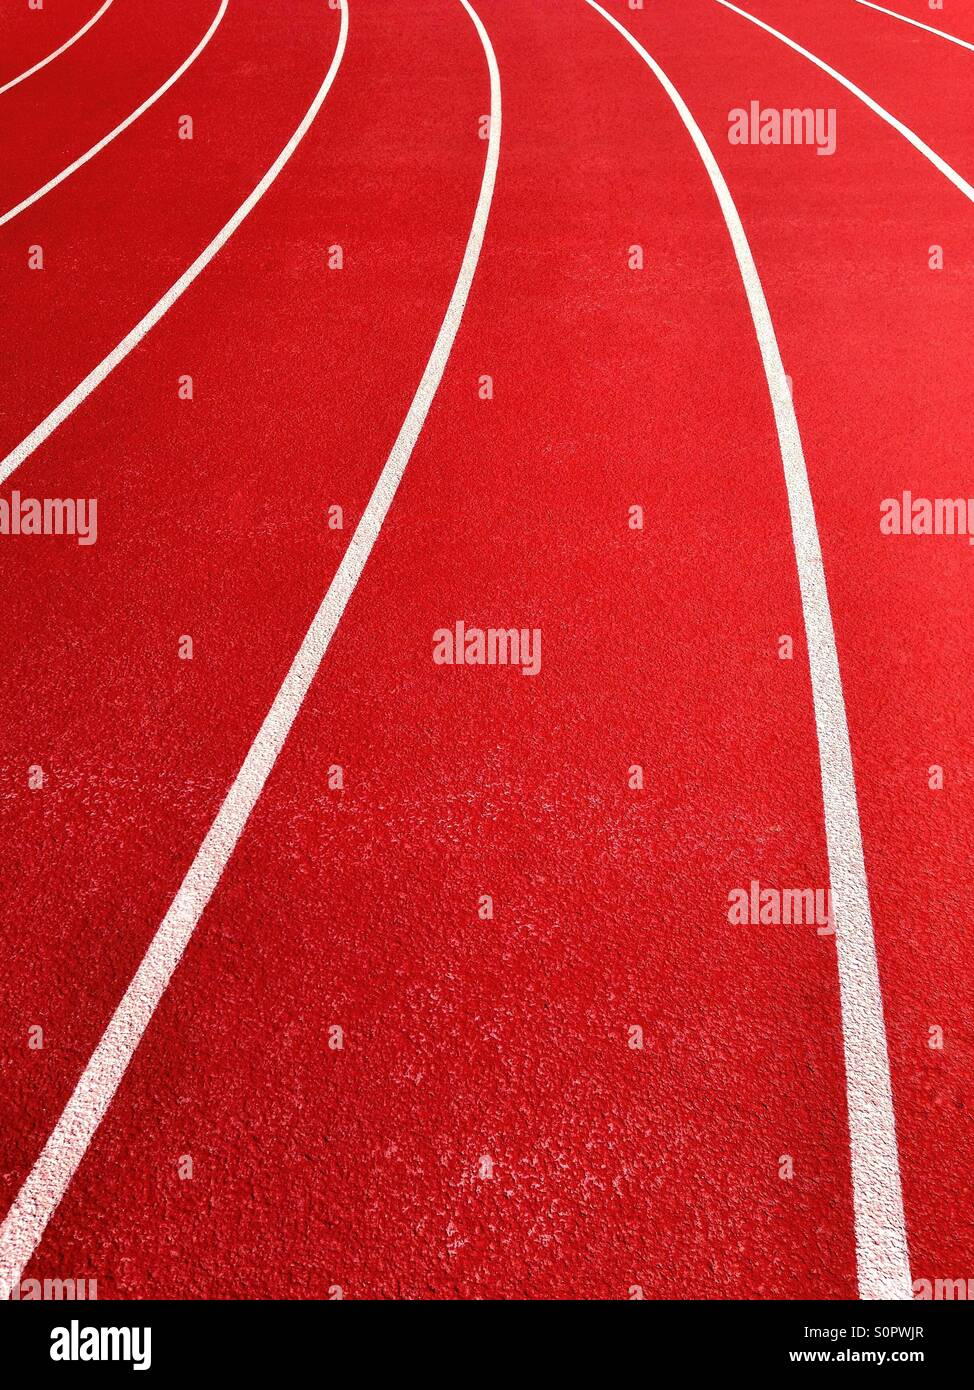 Lanes on running track - Stock Image